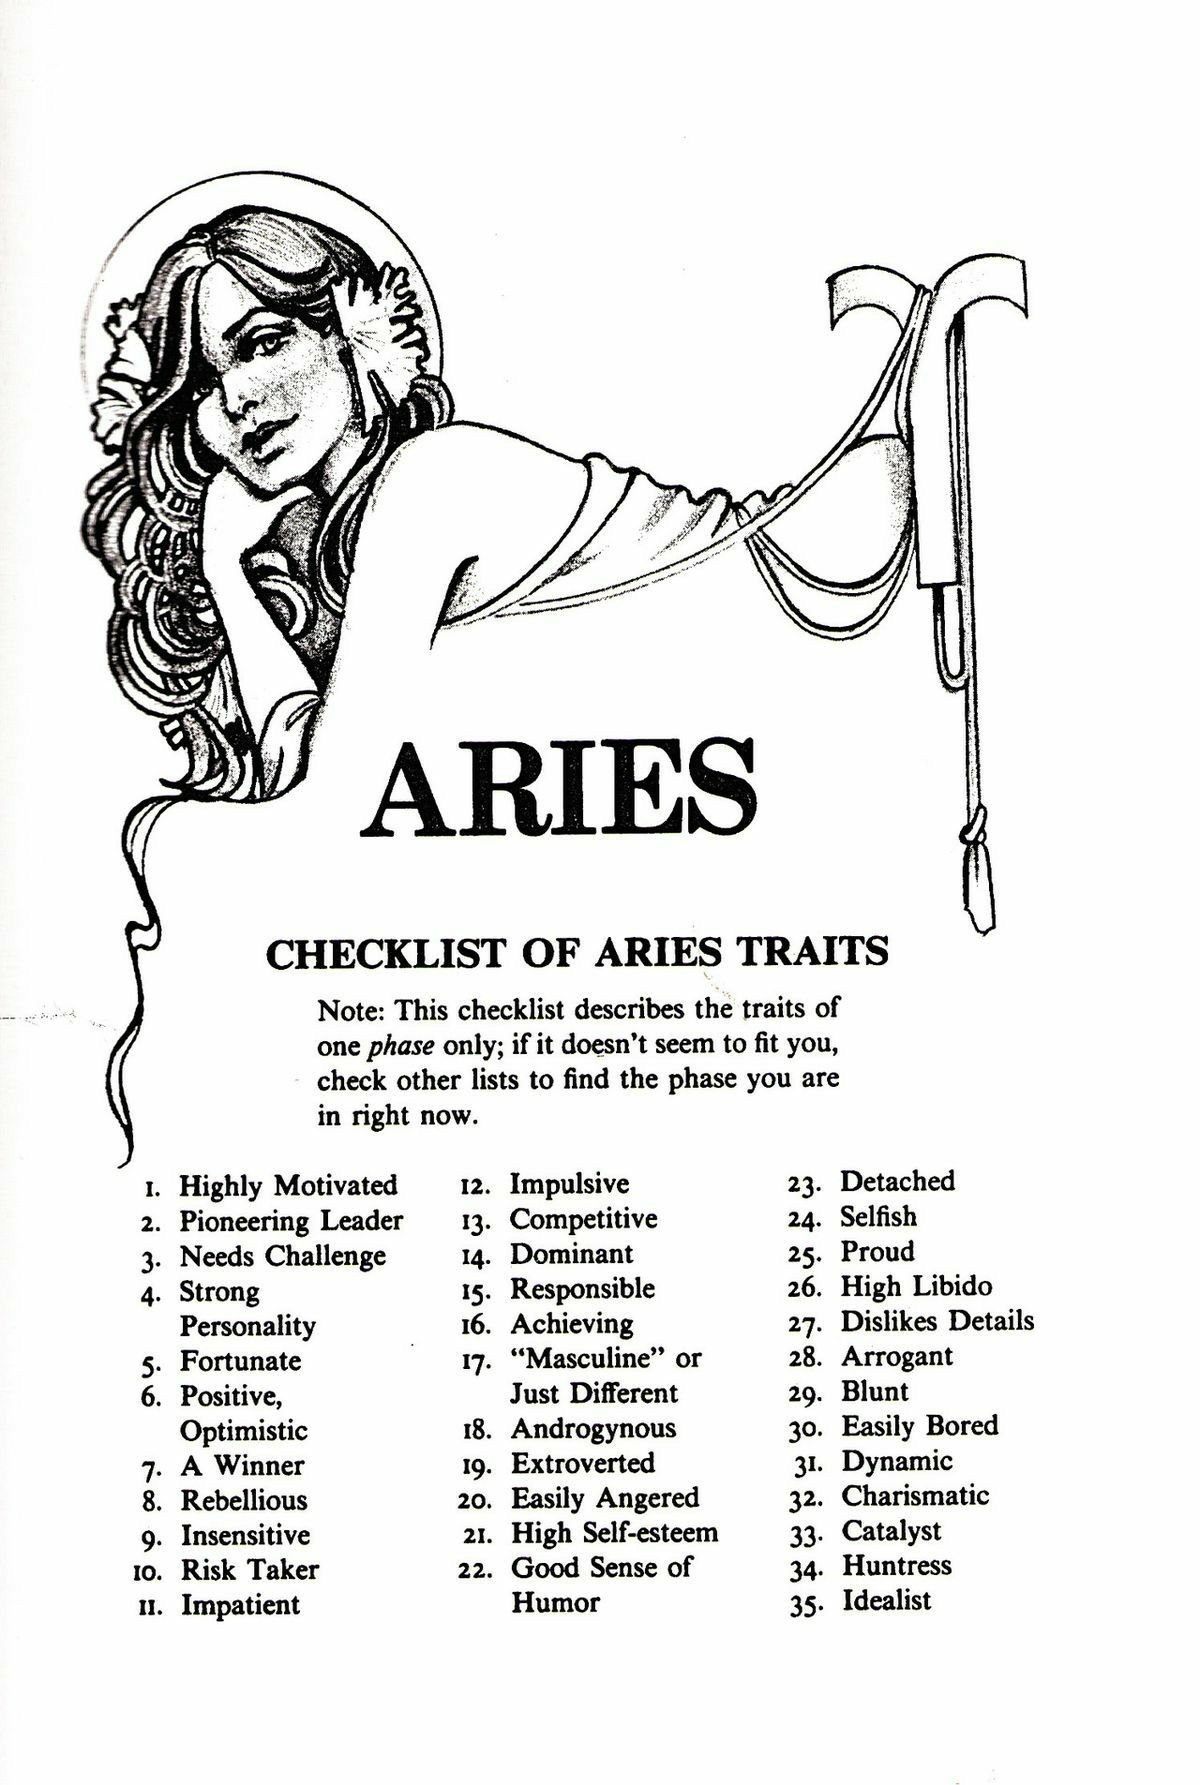 Aries Checklist Of Traits. Aries zodiac facts, Aries